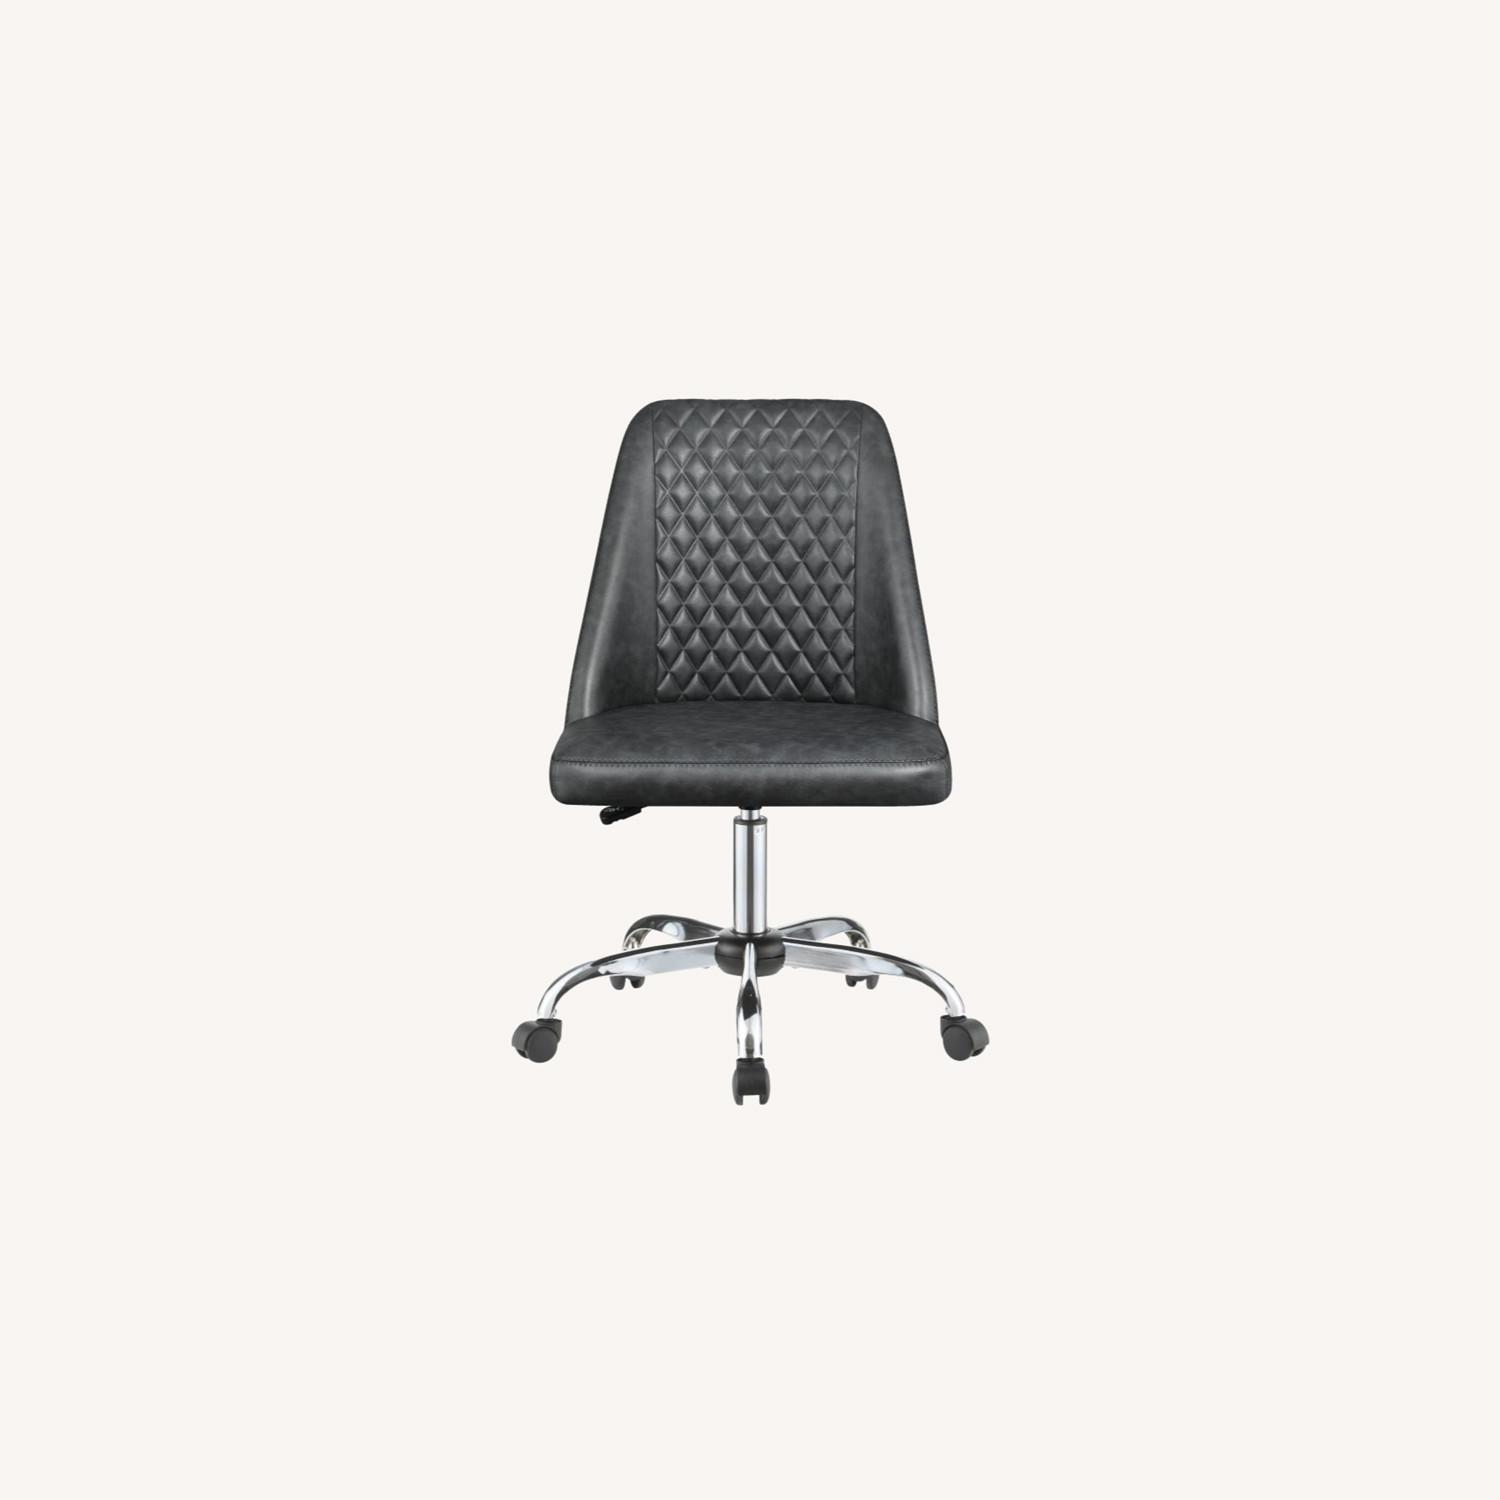 Office Chair In Tufted Grey Leatherette Upholstery - image-9